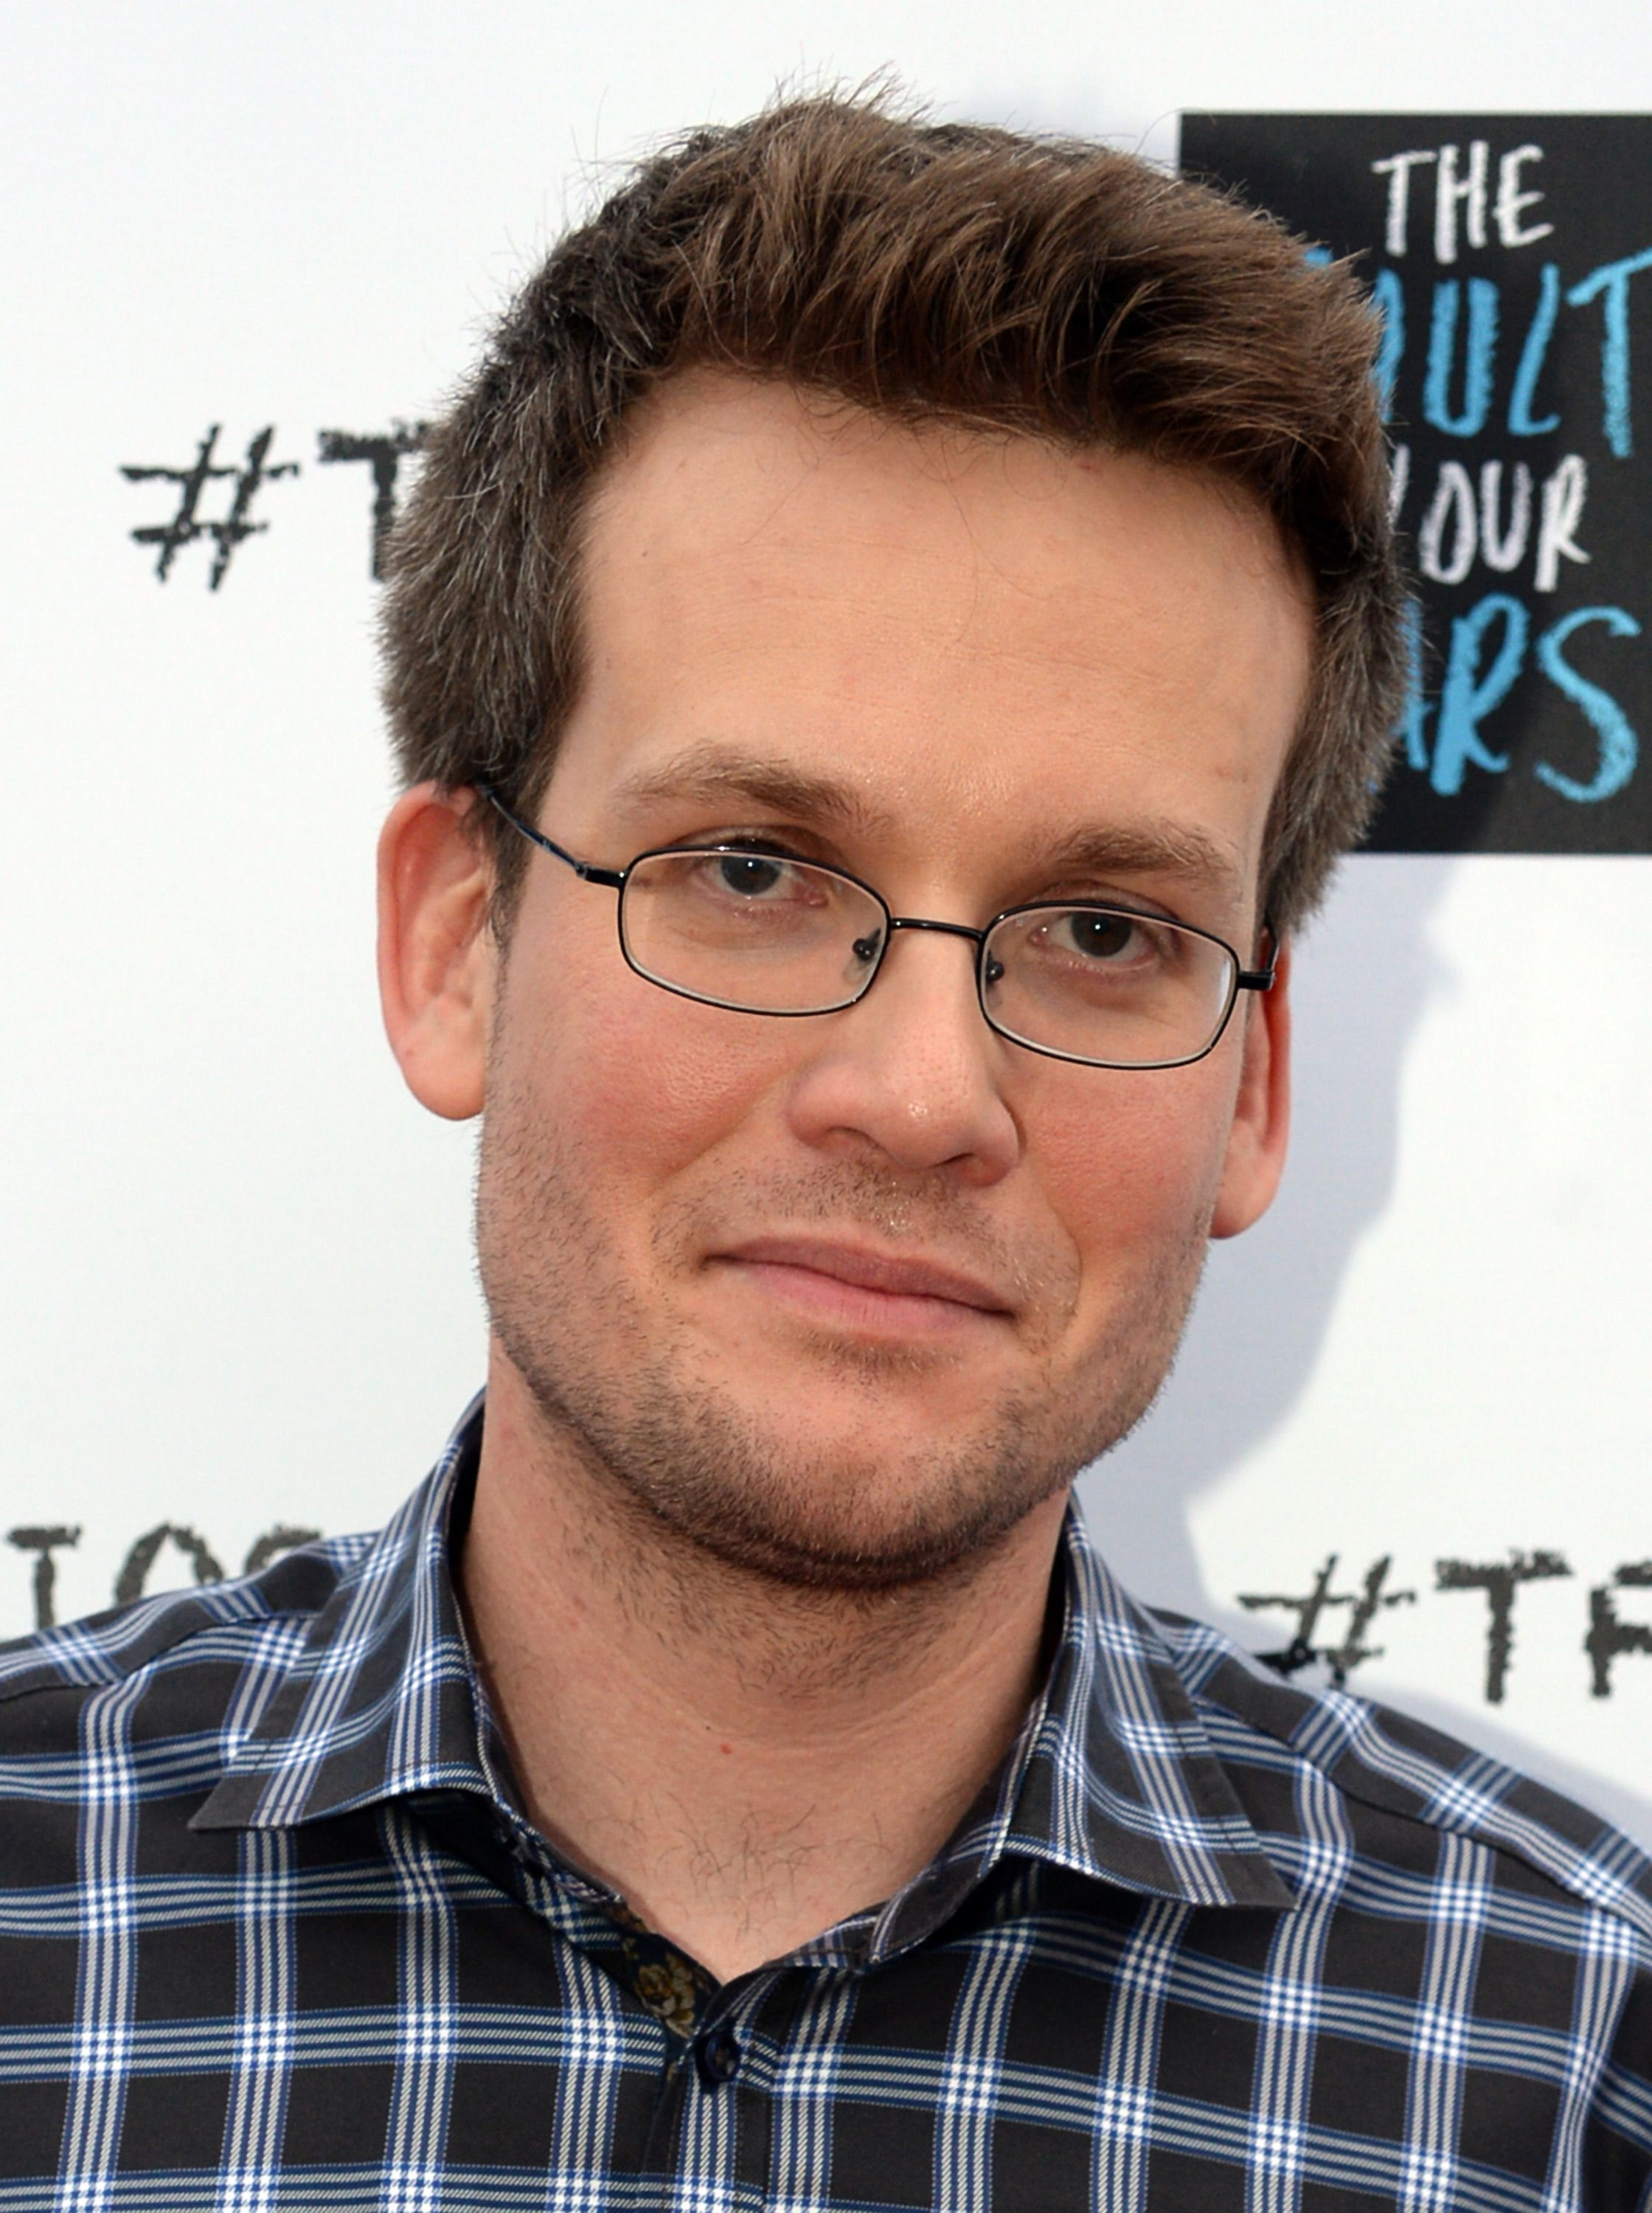 John Green The Fault In Our Stars Author